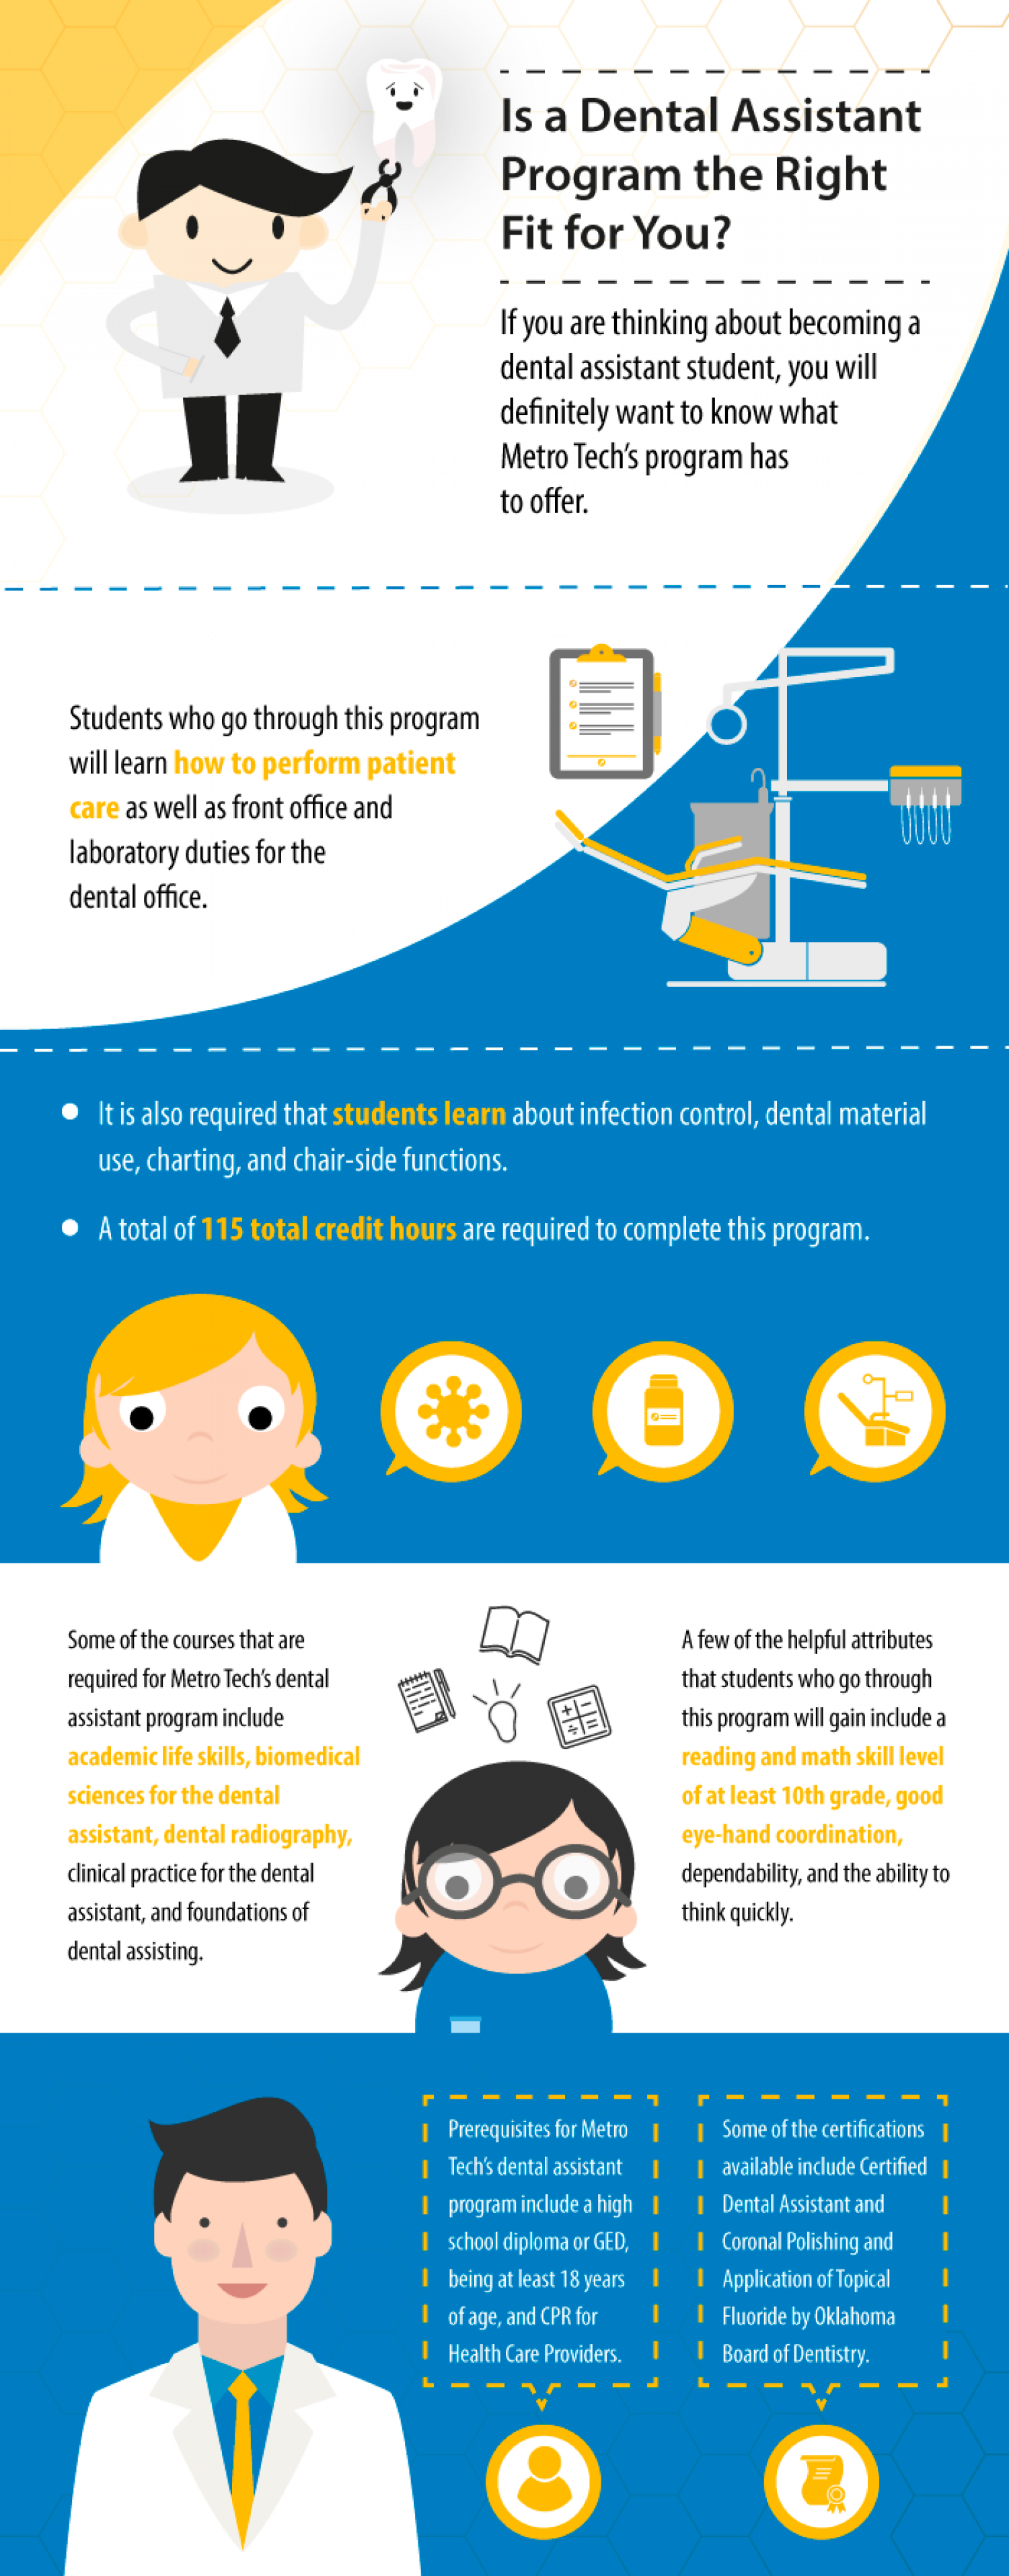 Is an Oklahoma Dental Assistant Program the Right Fit for You? Infographic